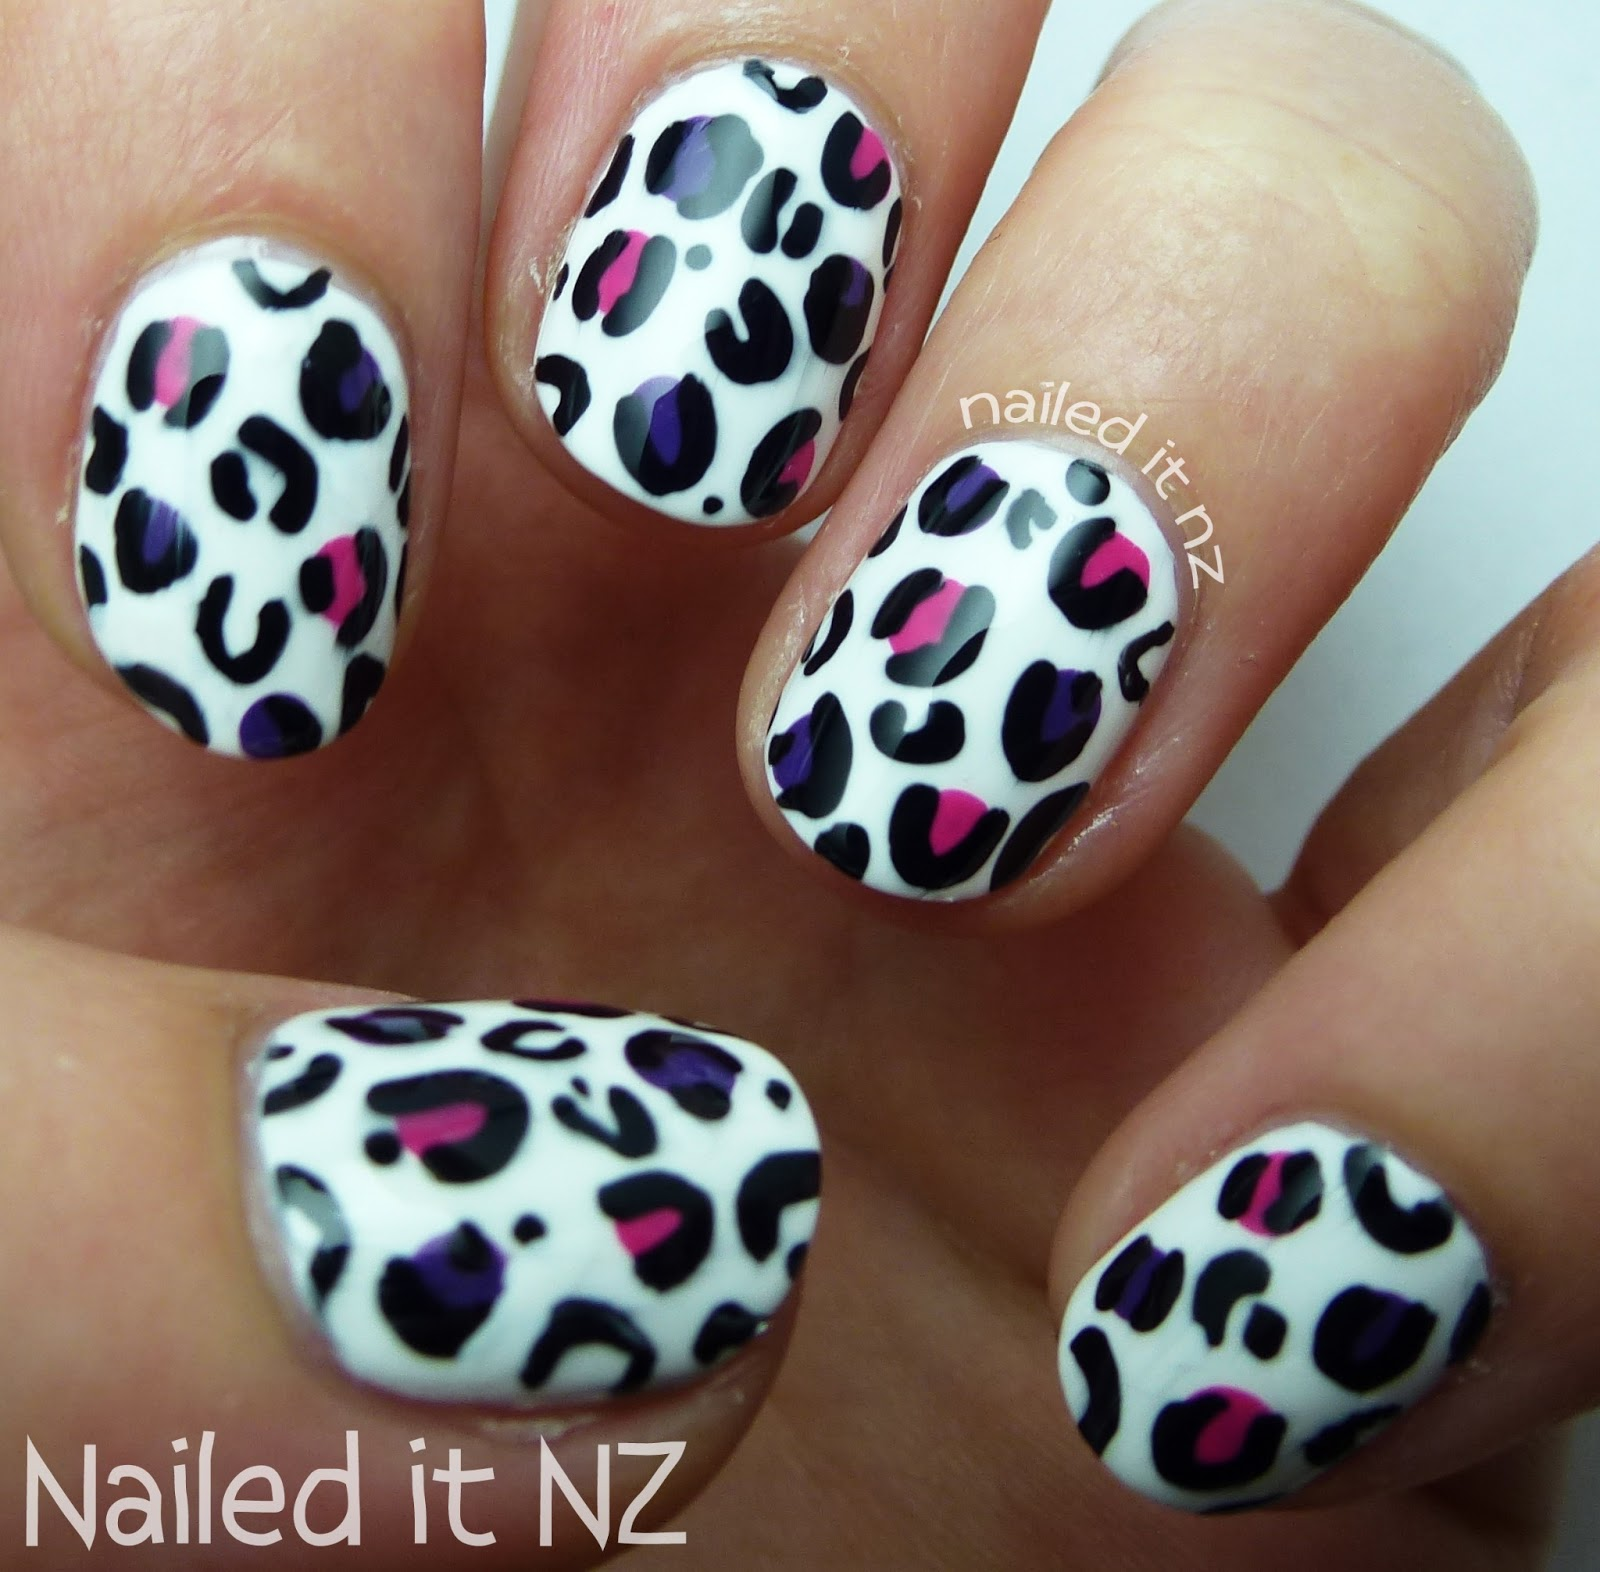 Nail art for short nails #8 - White leopard print nail art